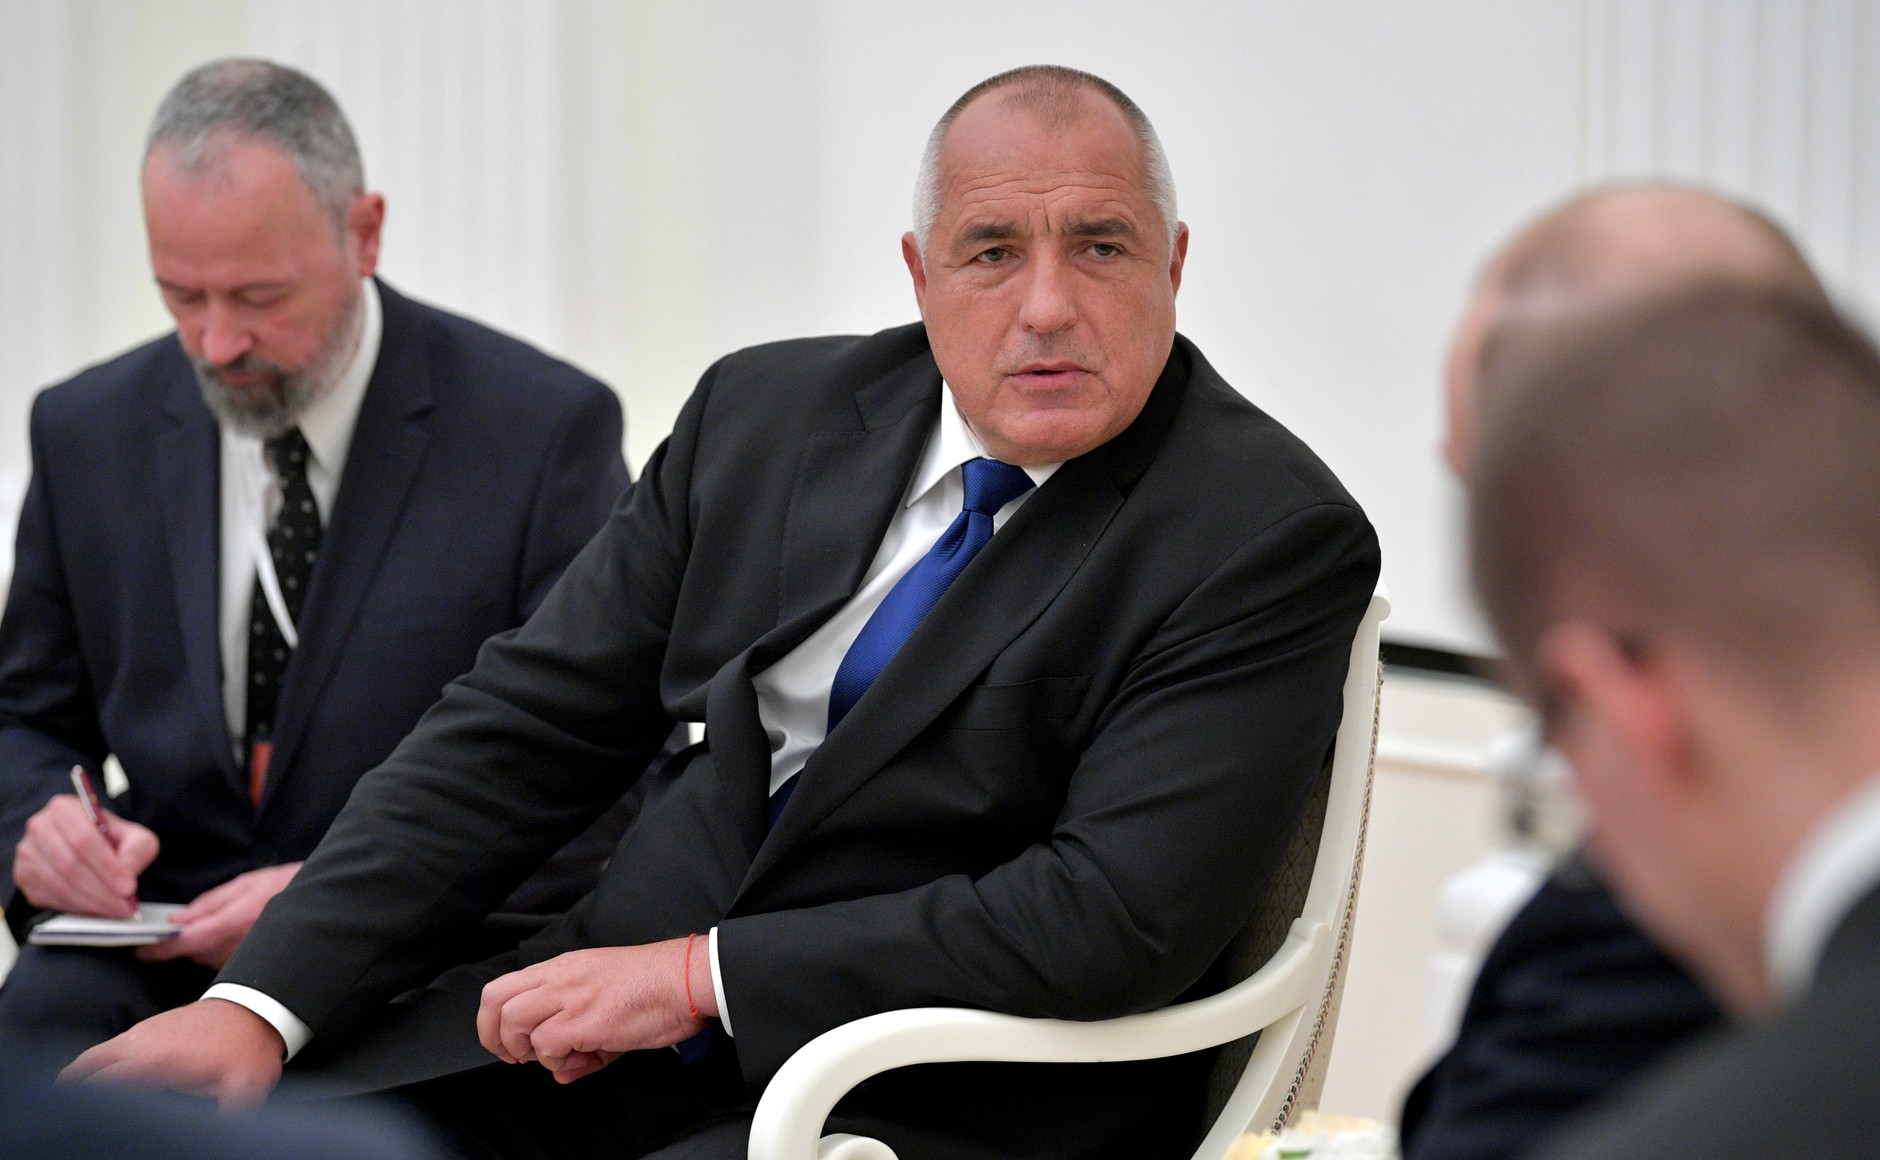 Bulgarian Prime Minister Boyko Borissov pictured in 2018 at the Kremlin meeting with Russian President Vladimir Putin. (The Kremlin)